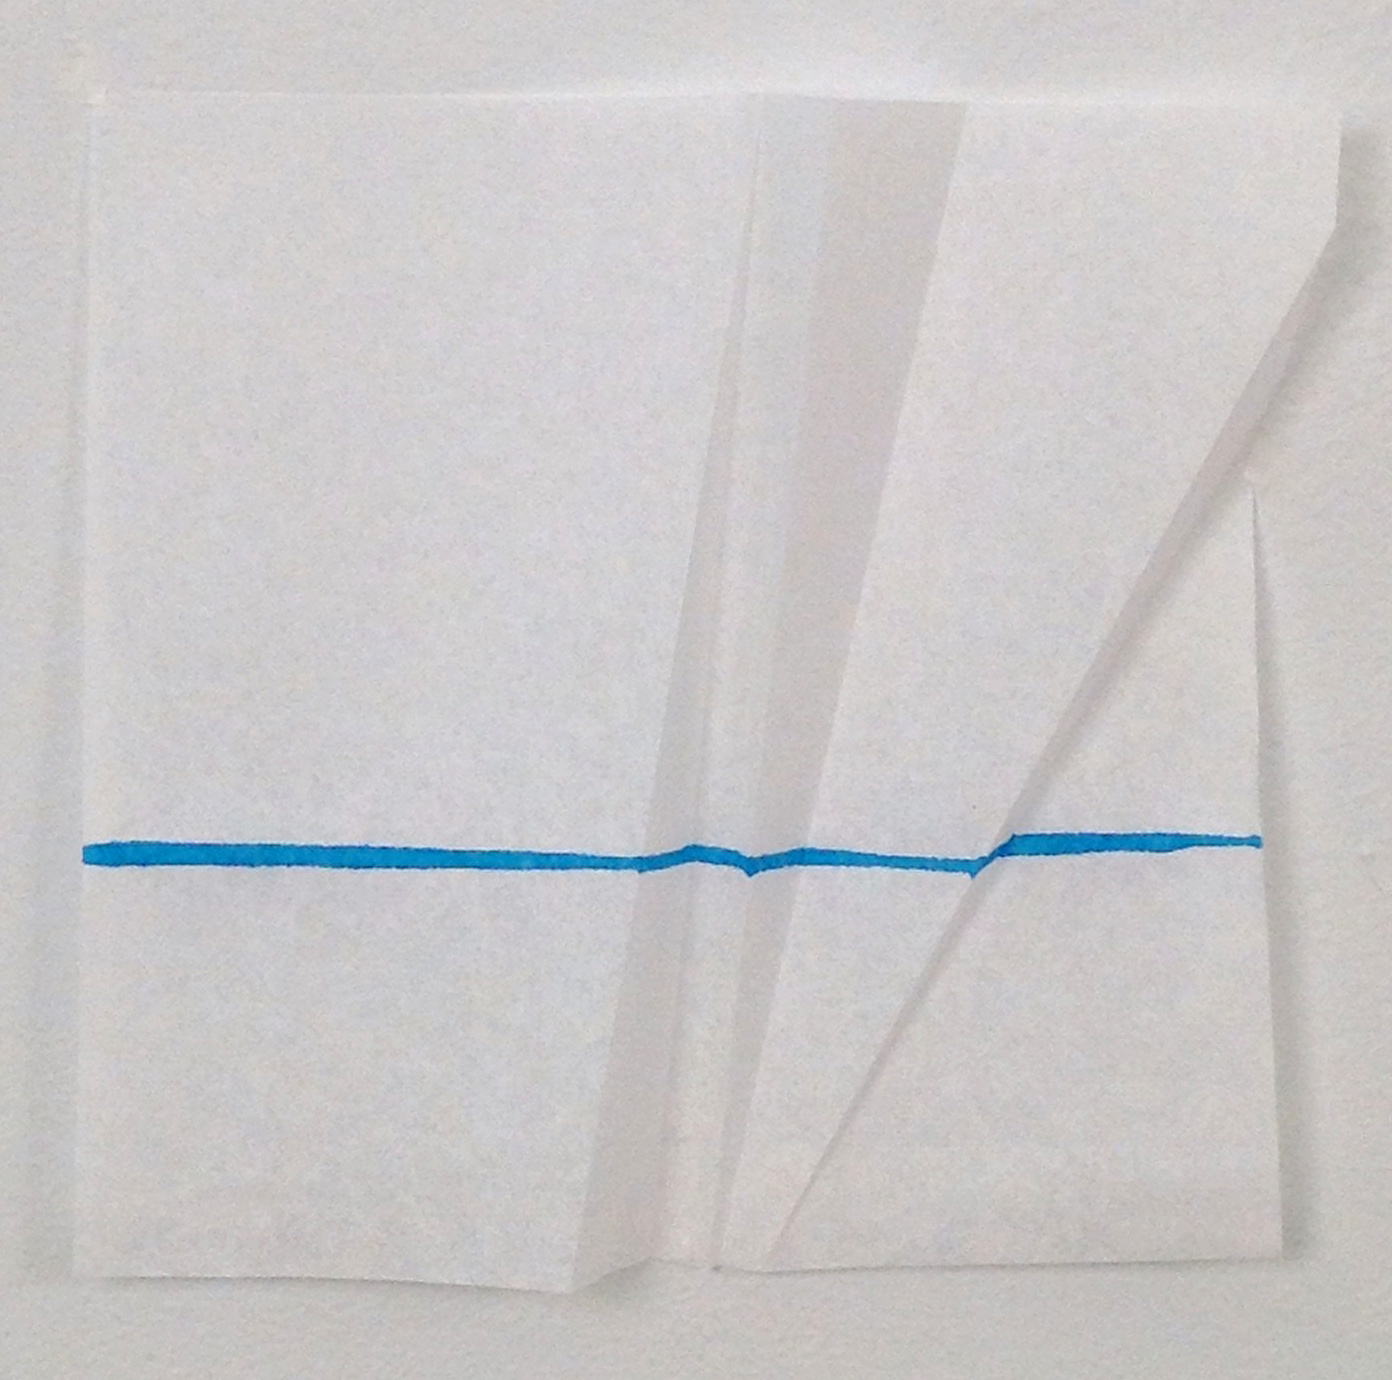 The effect of a fold on a line.